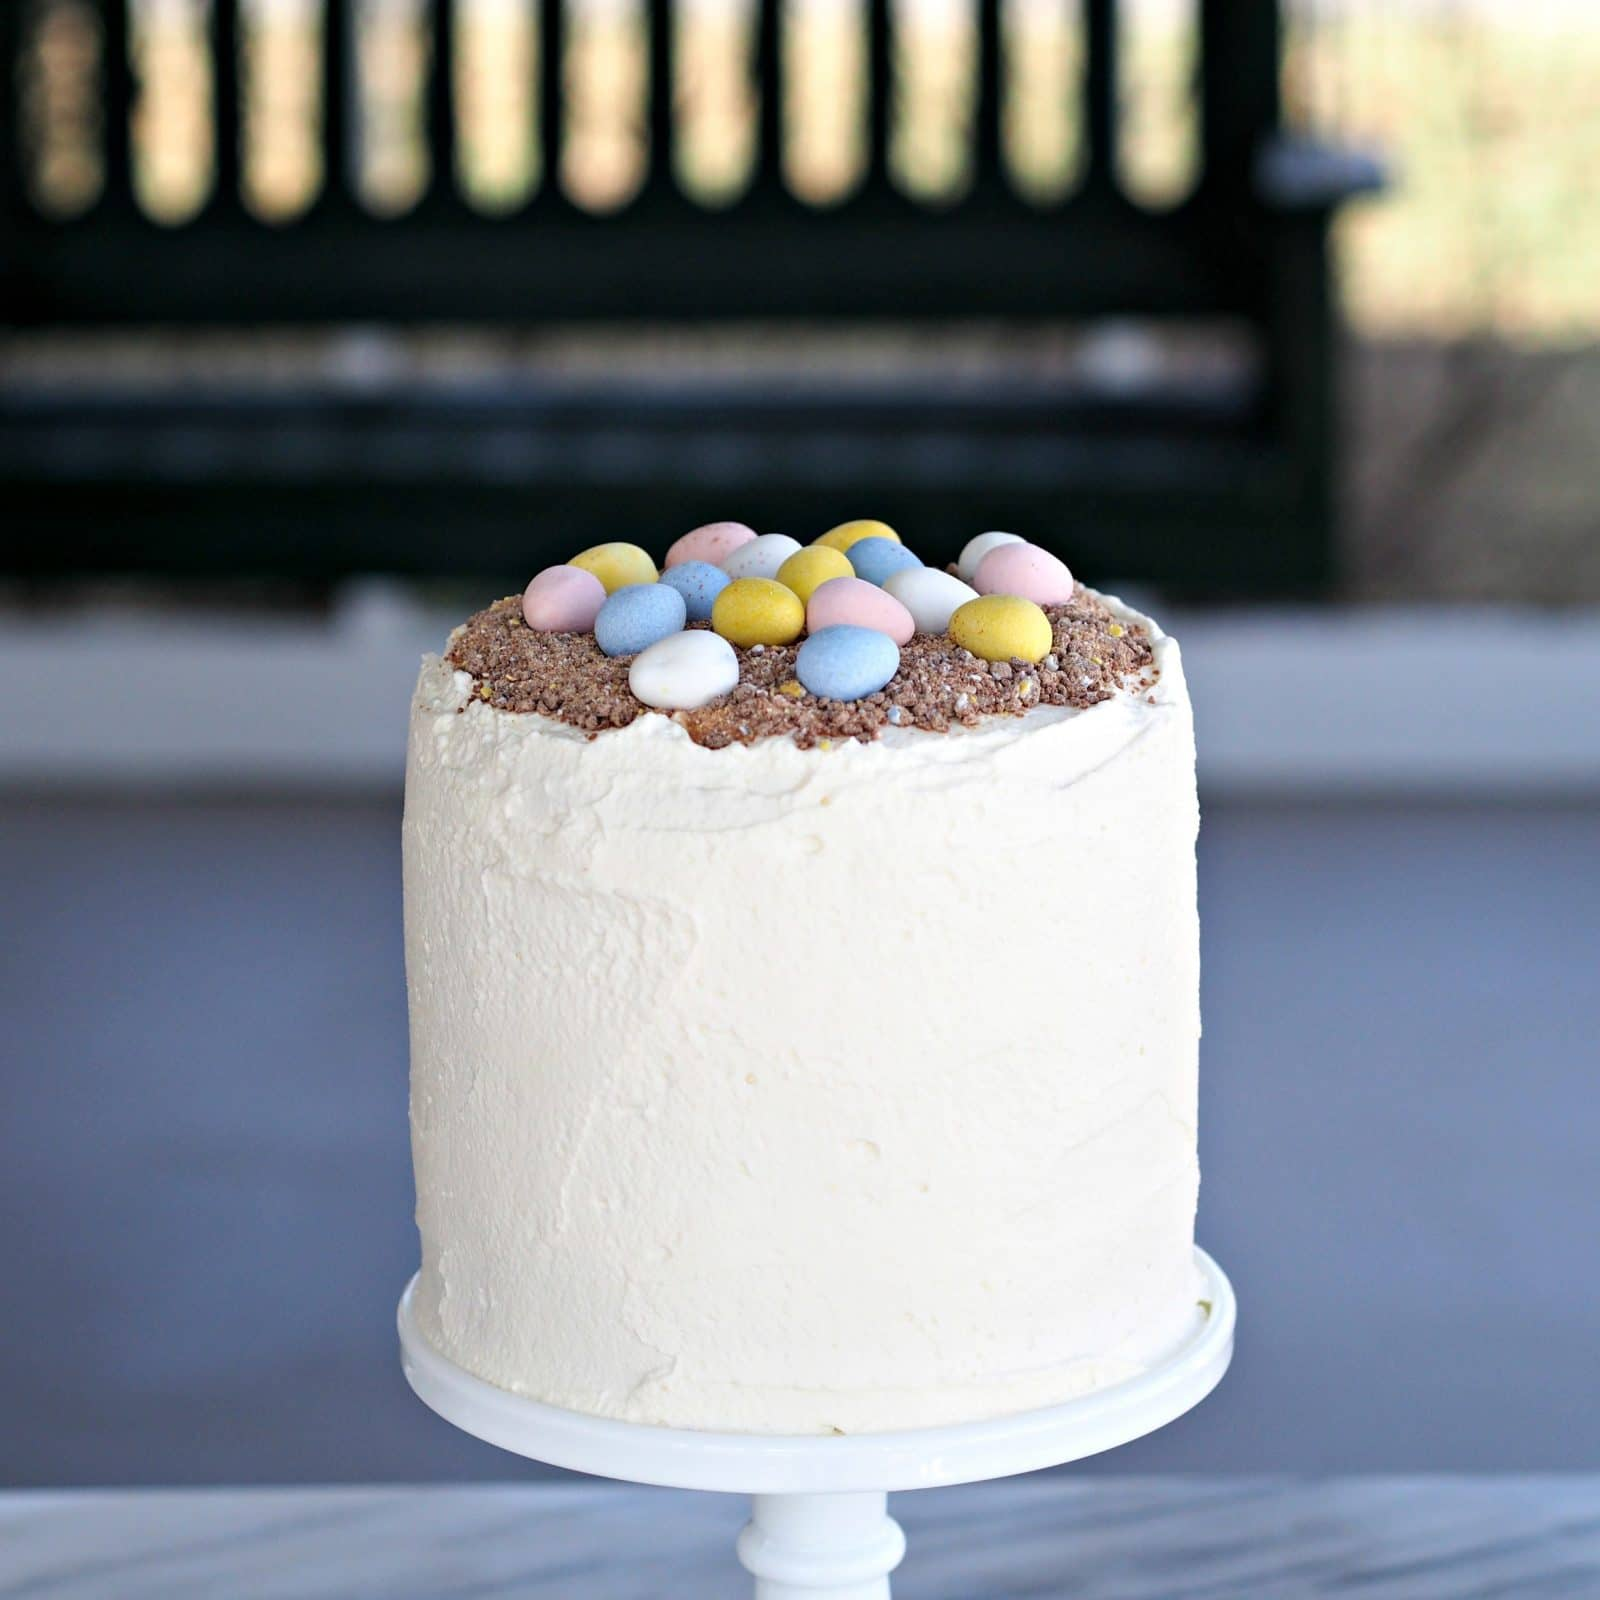 Cadbury Mini Eggs Cake with Mascarpone Whipped Cream Frosting